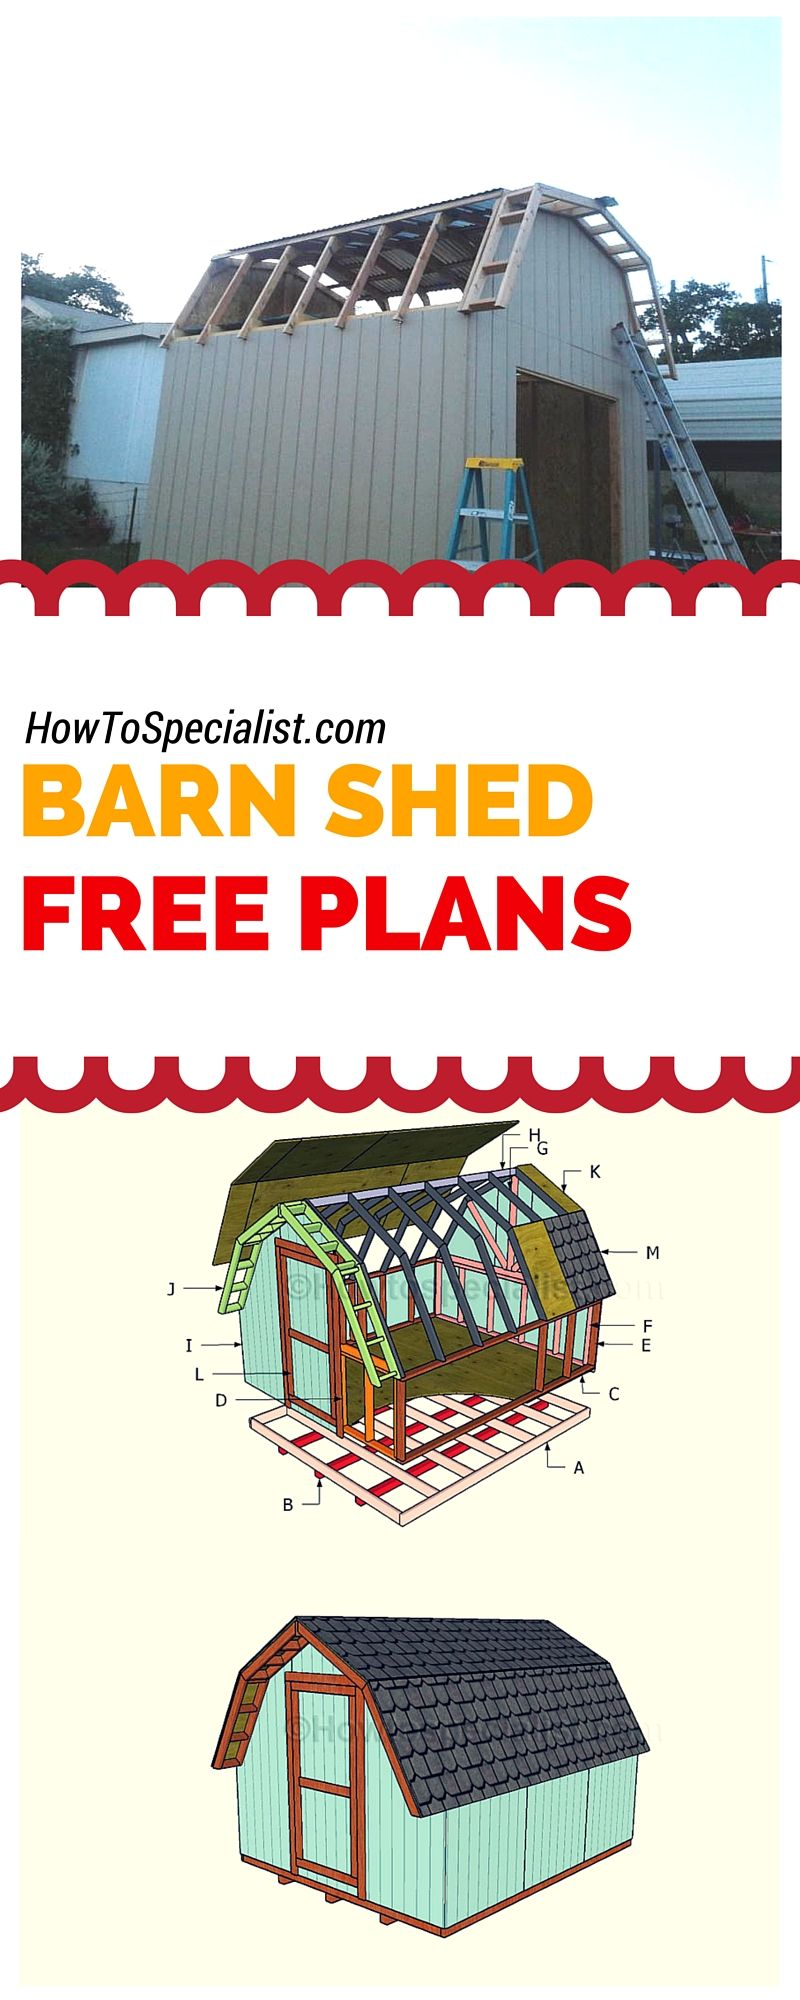 10x12 Barn Shed Plans Howtospecialist How To Build Step By Step Diy Plans Barns Sheds Shed Plans Diy Shed Plans